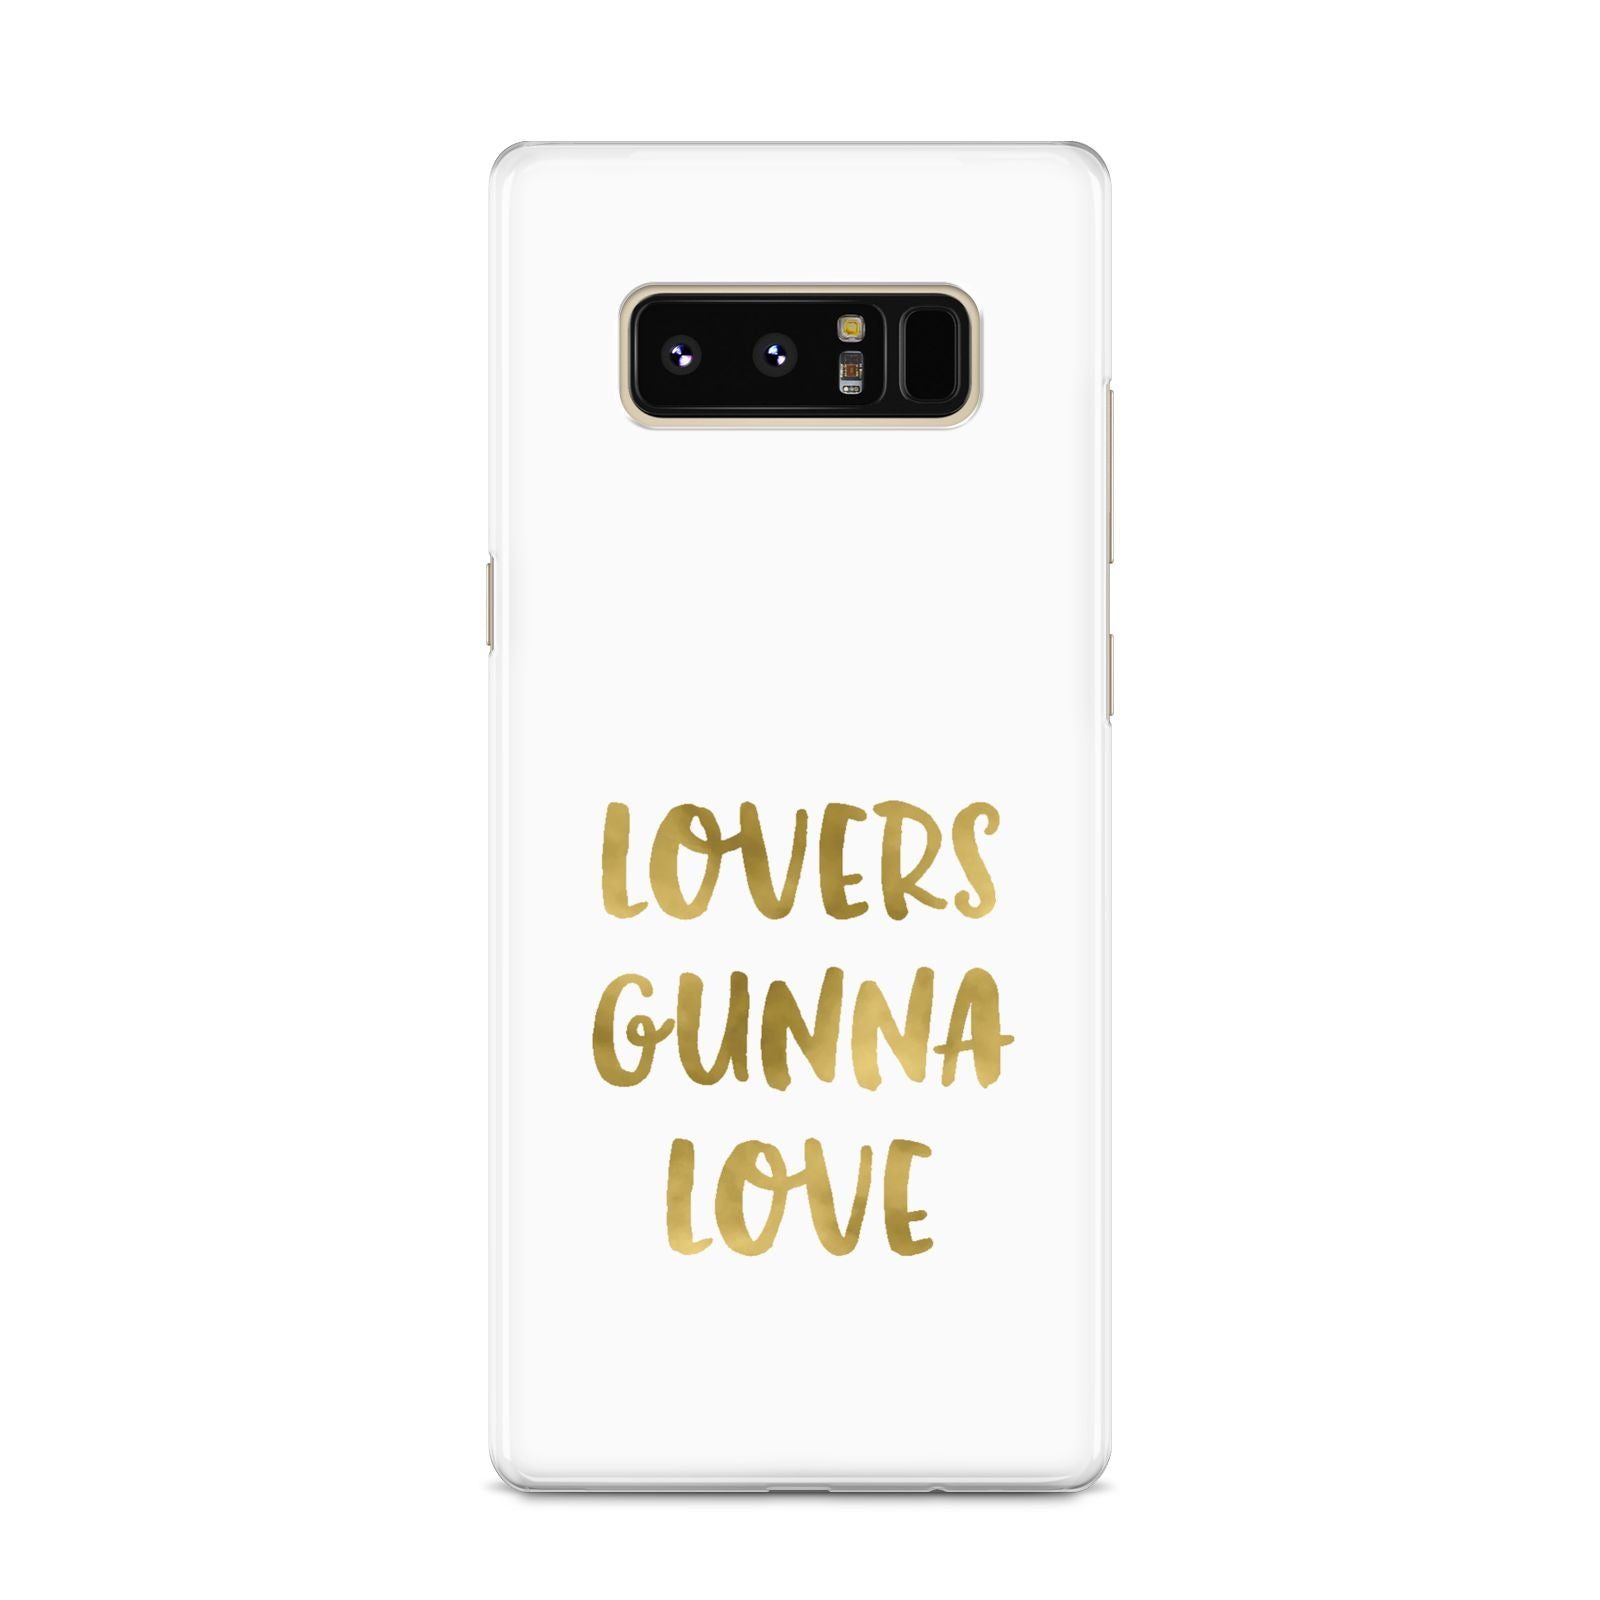 Lovers Gunna Love Real Gold Foil Samsung Galaxy S8 Case